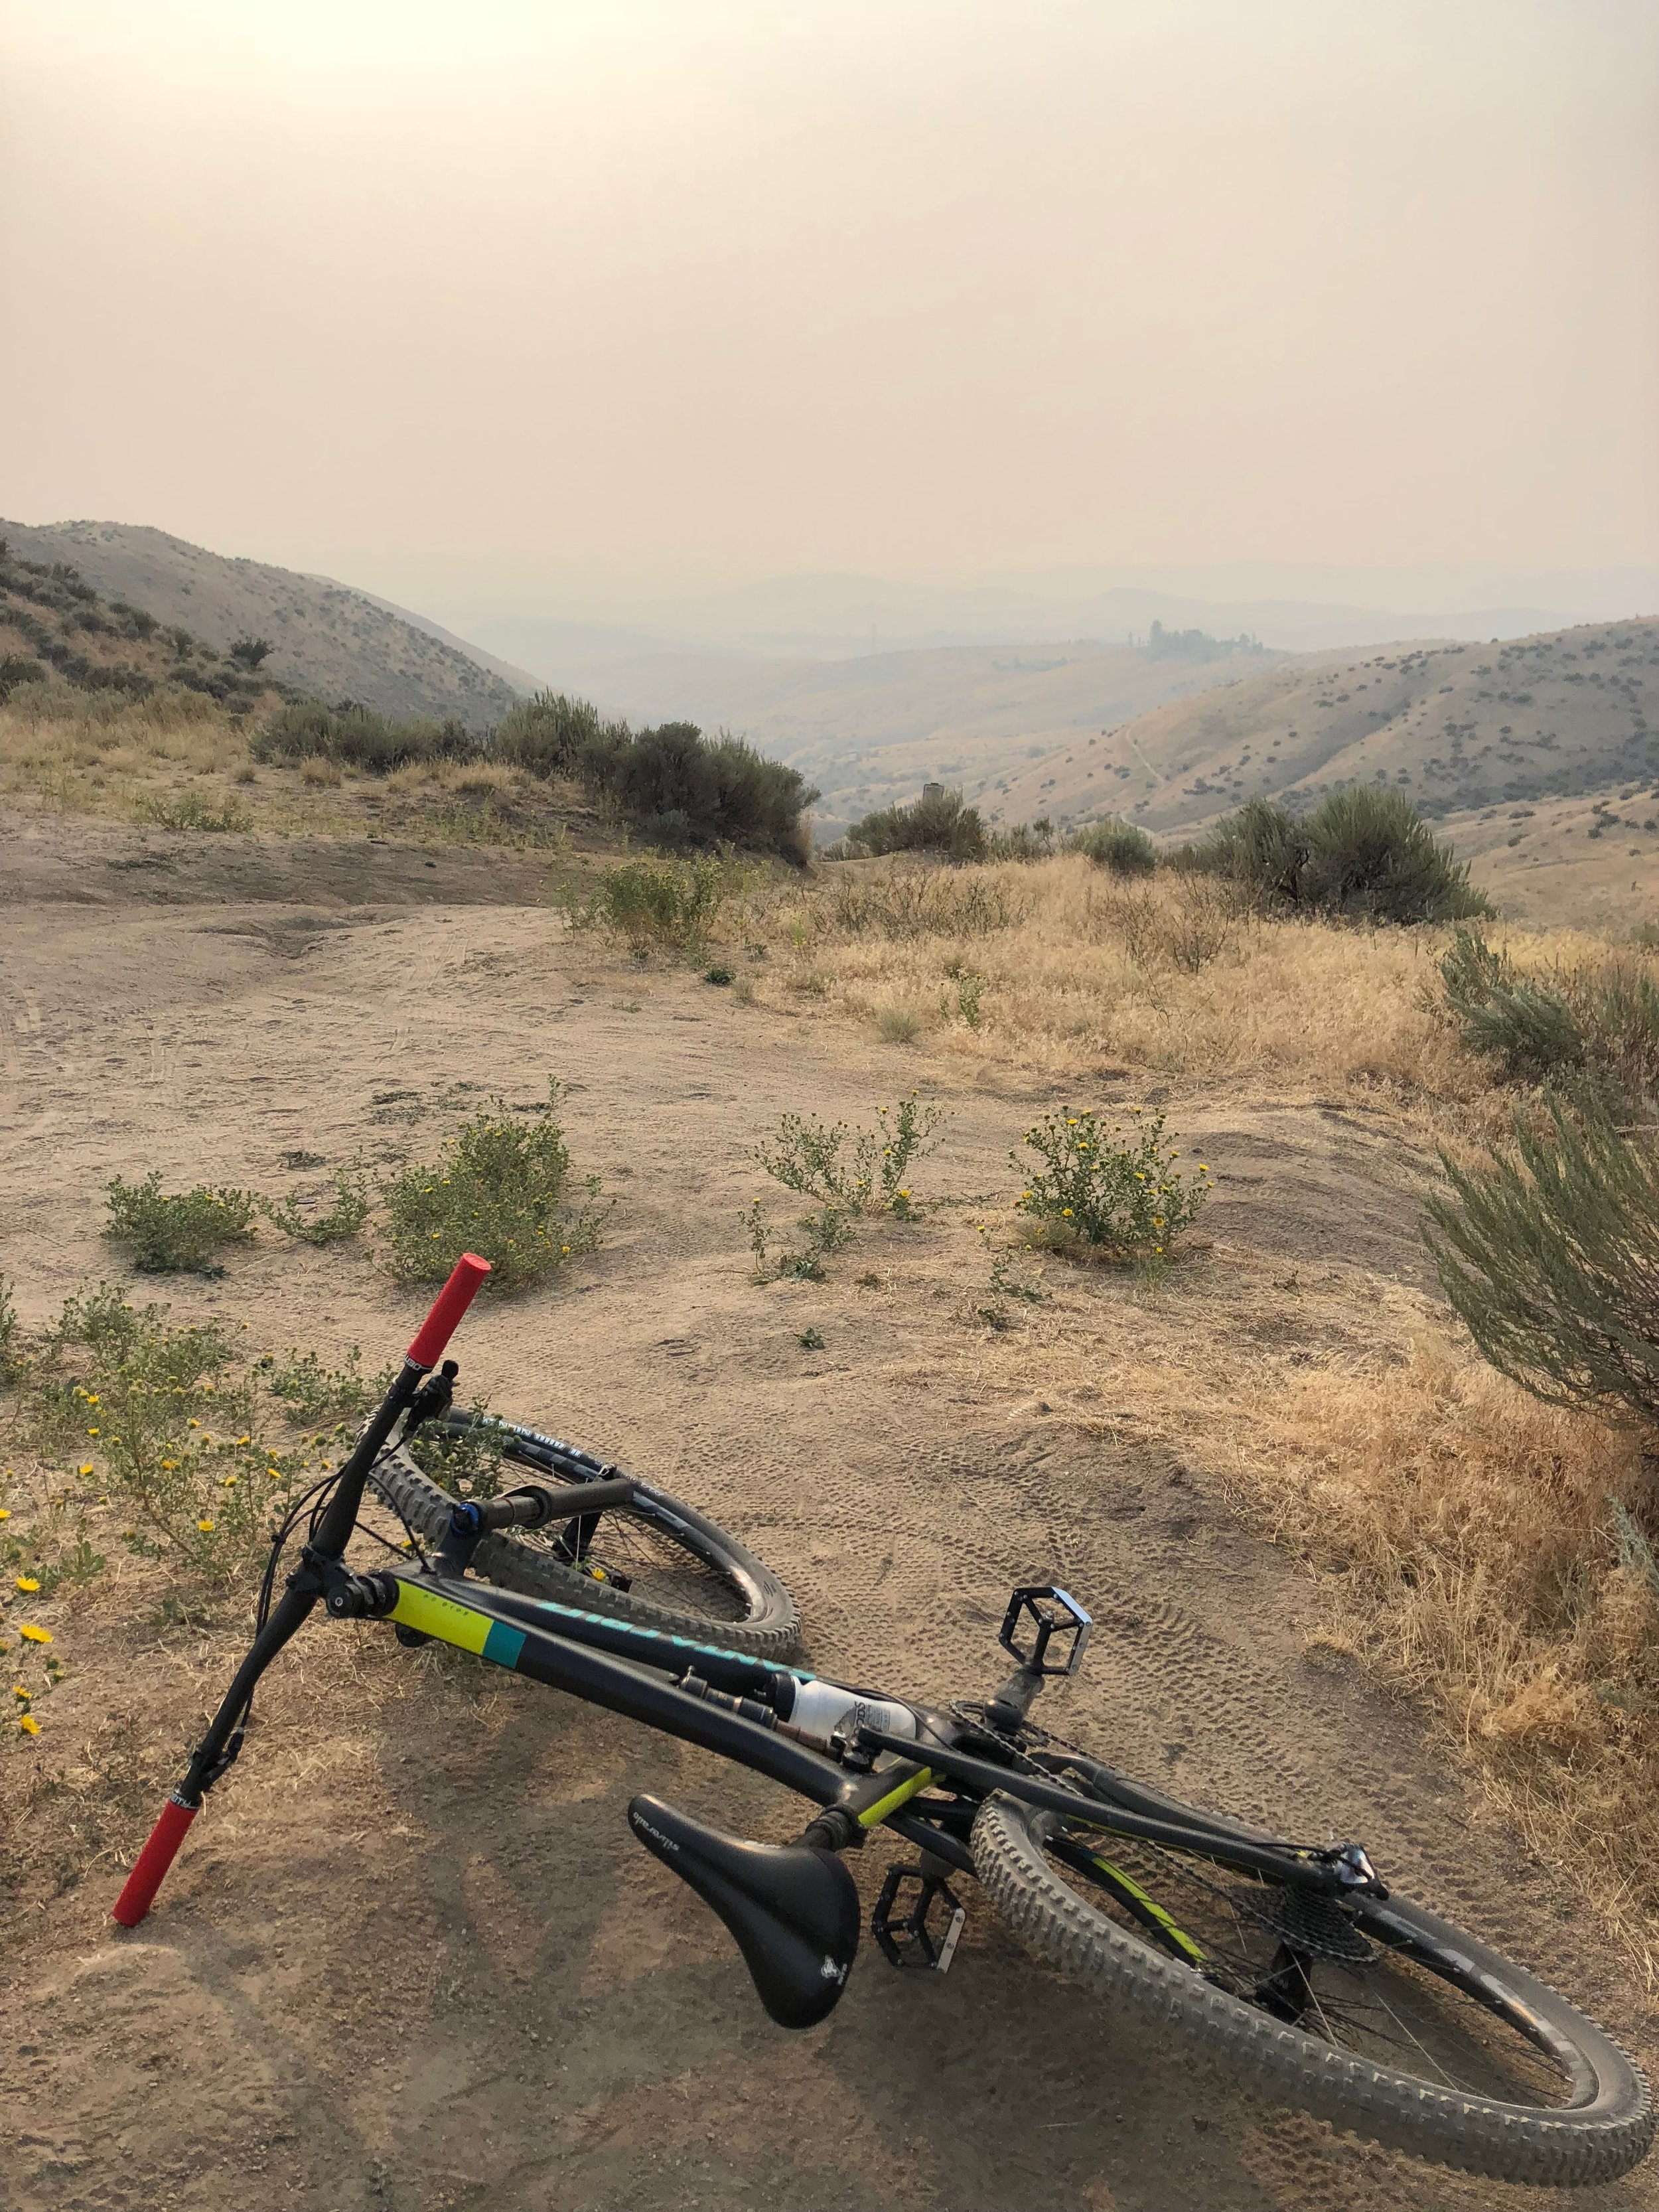 The air from west-coast wildfires was nasty, but August 23 was my first day back on a mountain bike using flat pedals and my walking boot.